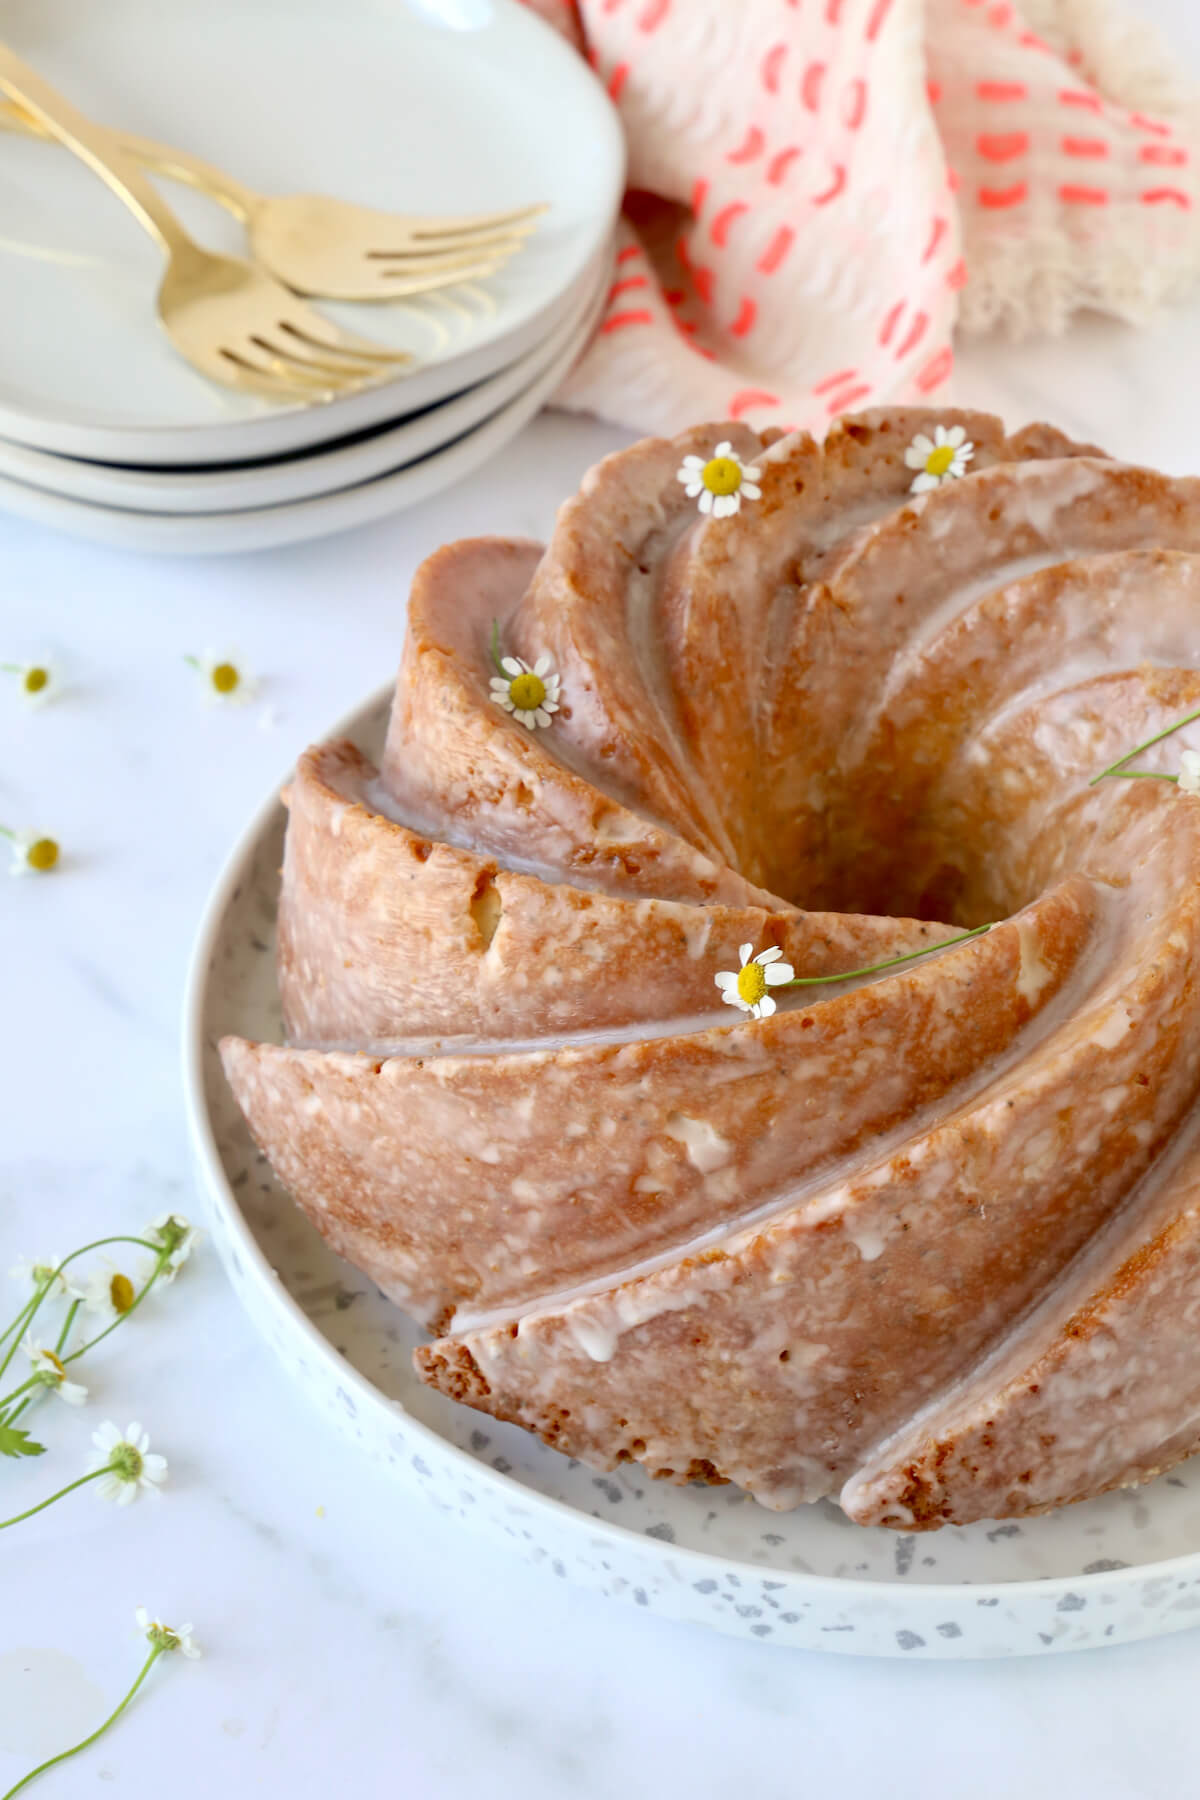 A nine inch bundt cake on a plate next to a stack of three dessert dishes and forks.